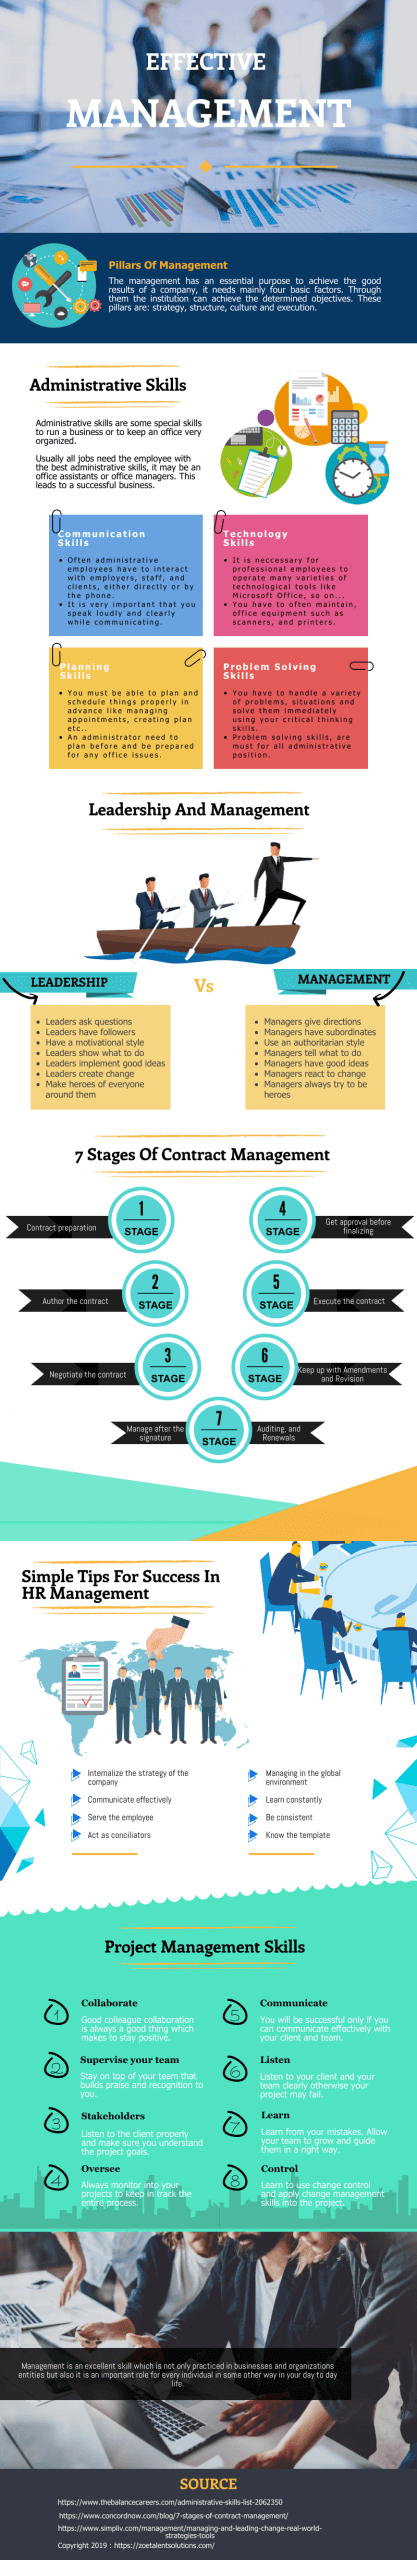 Infographic-effective-management